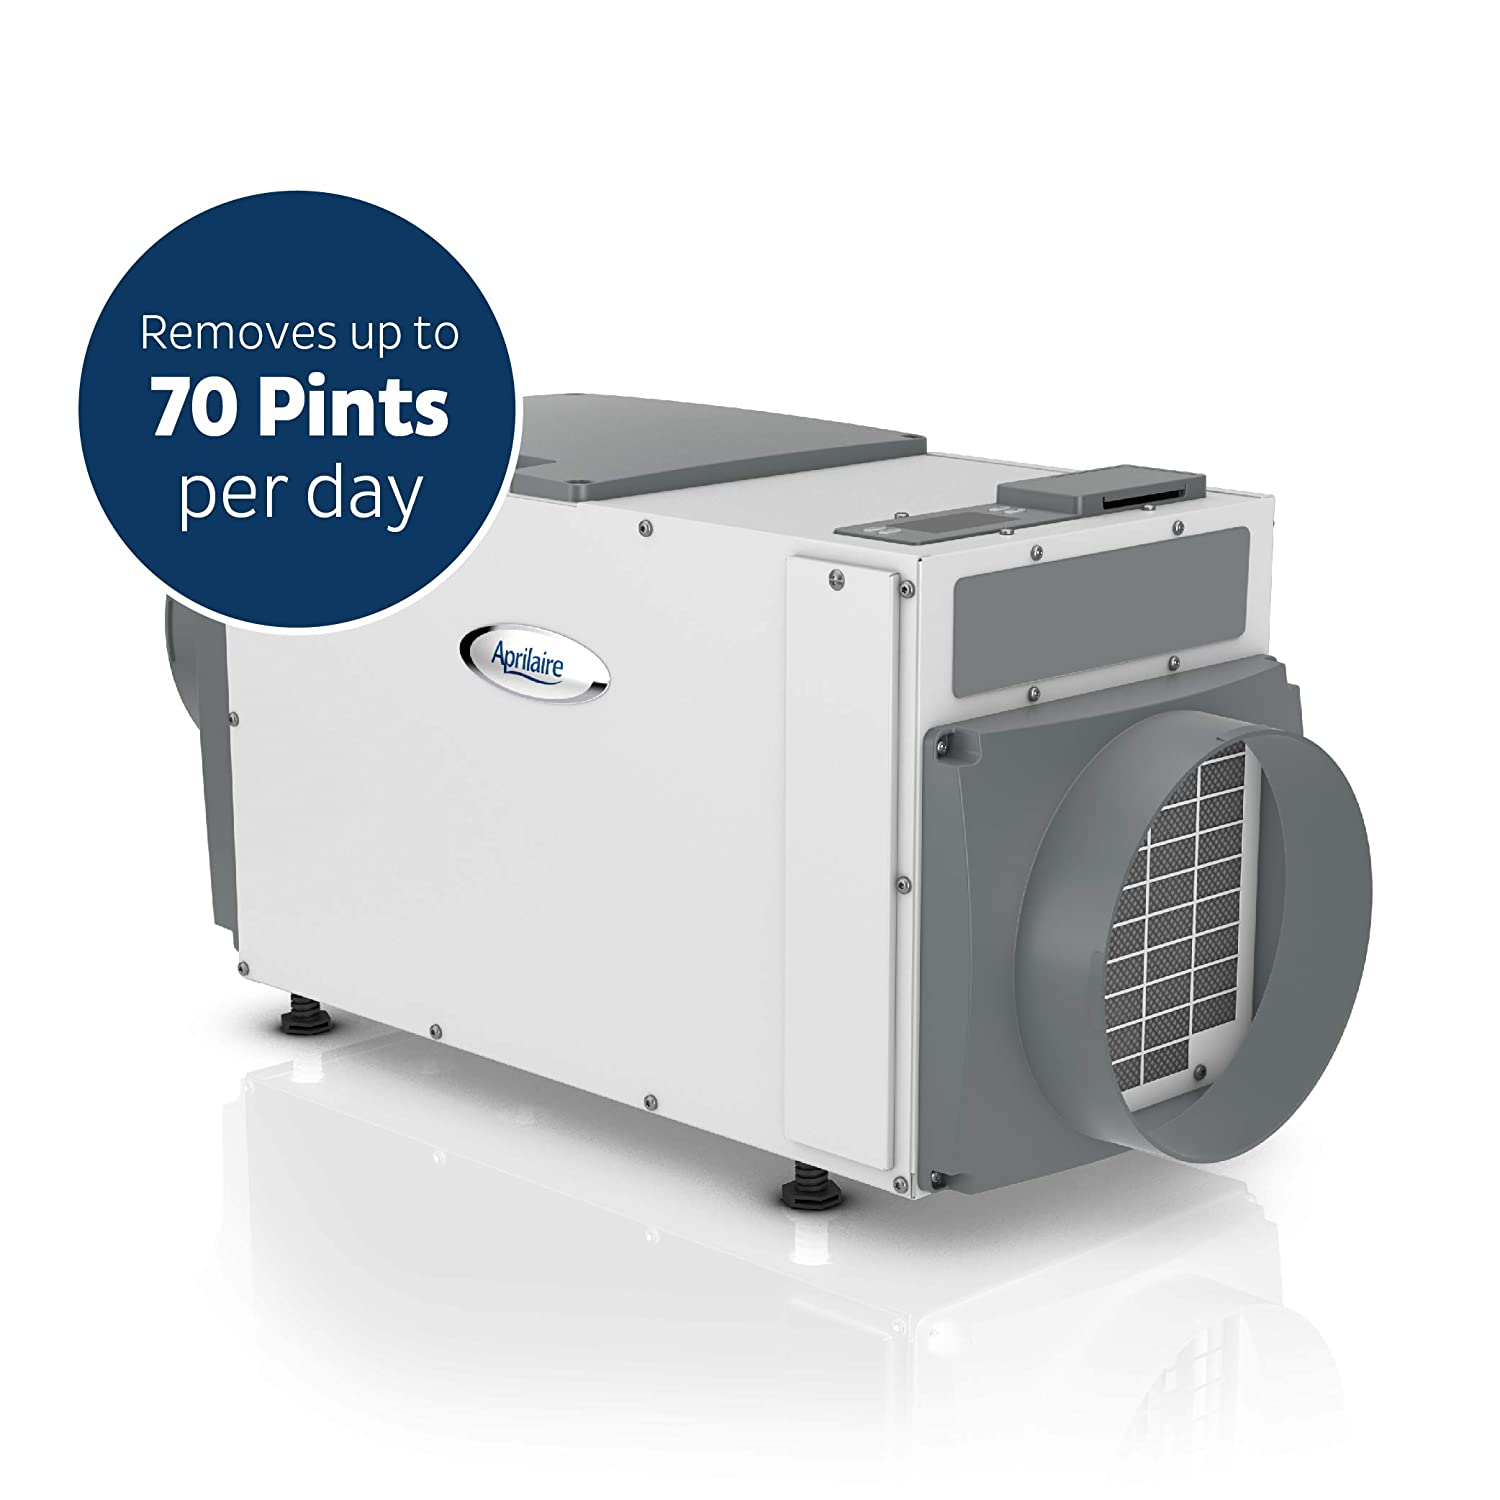 Aprilaire 1830 Pro Basement Dehumidifier, 70 Pint Commercial Dehumidifier for Basements up to 3,800 sq. ft.